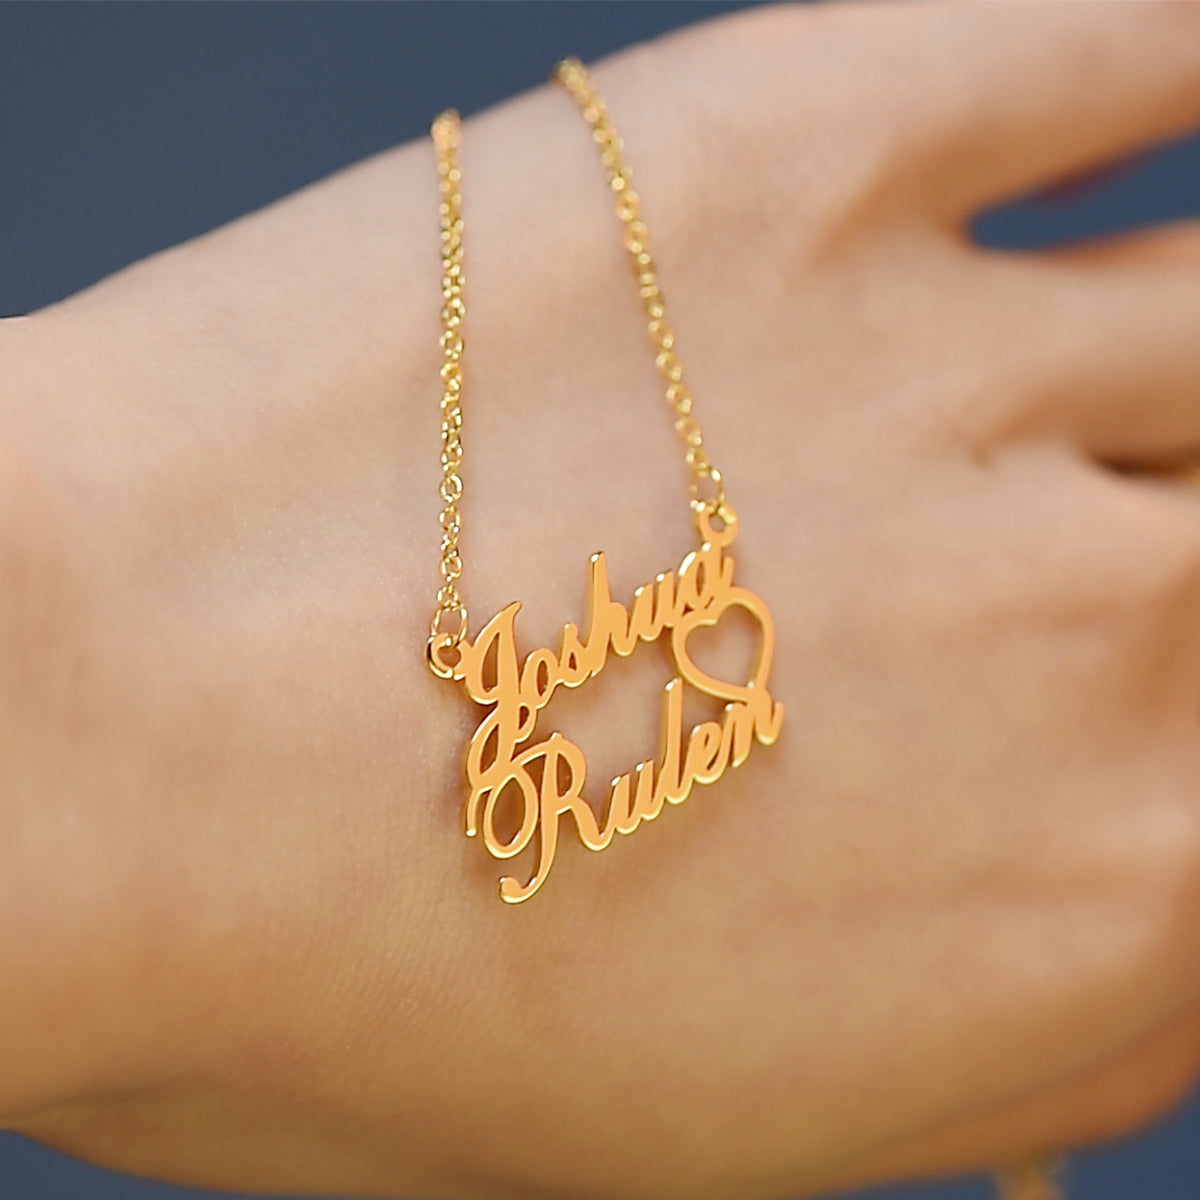 Heart Name Necklace Gold Pendant With Two Name